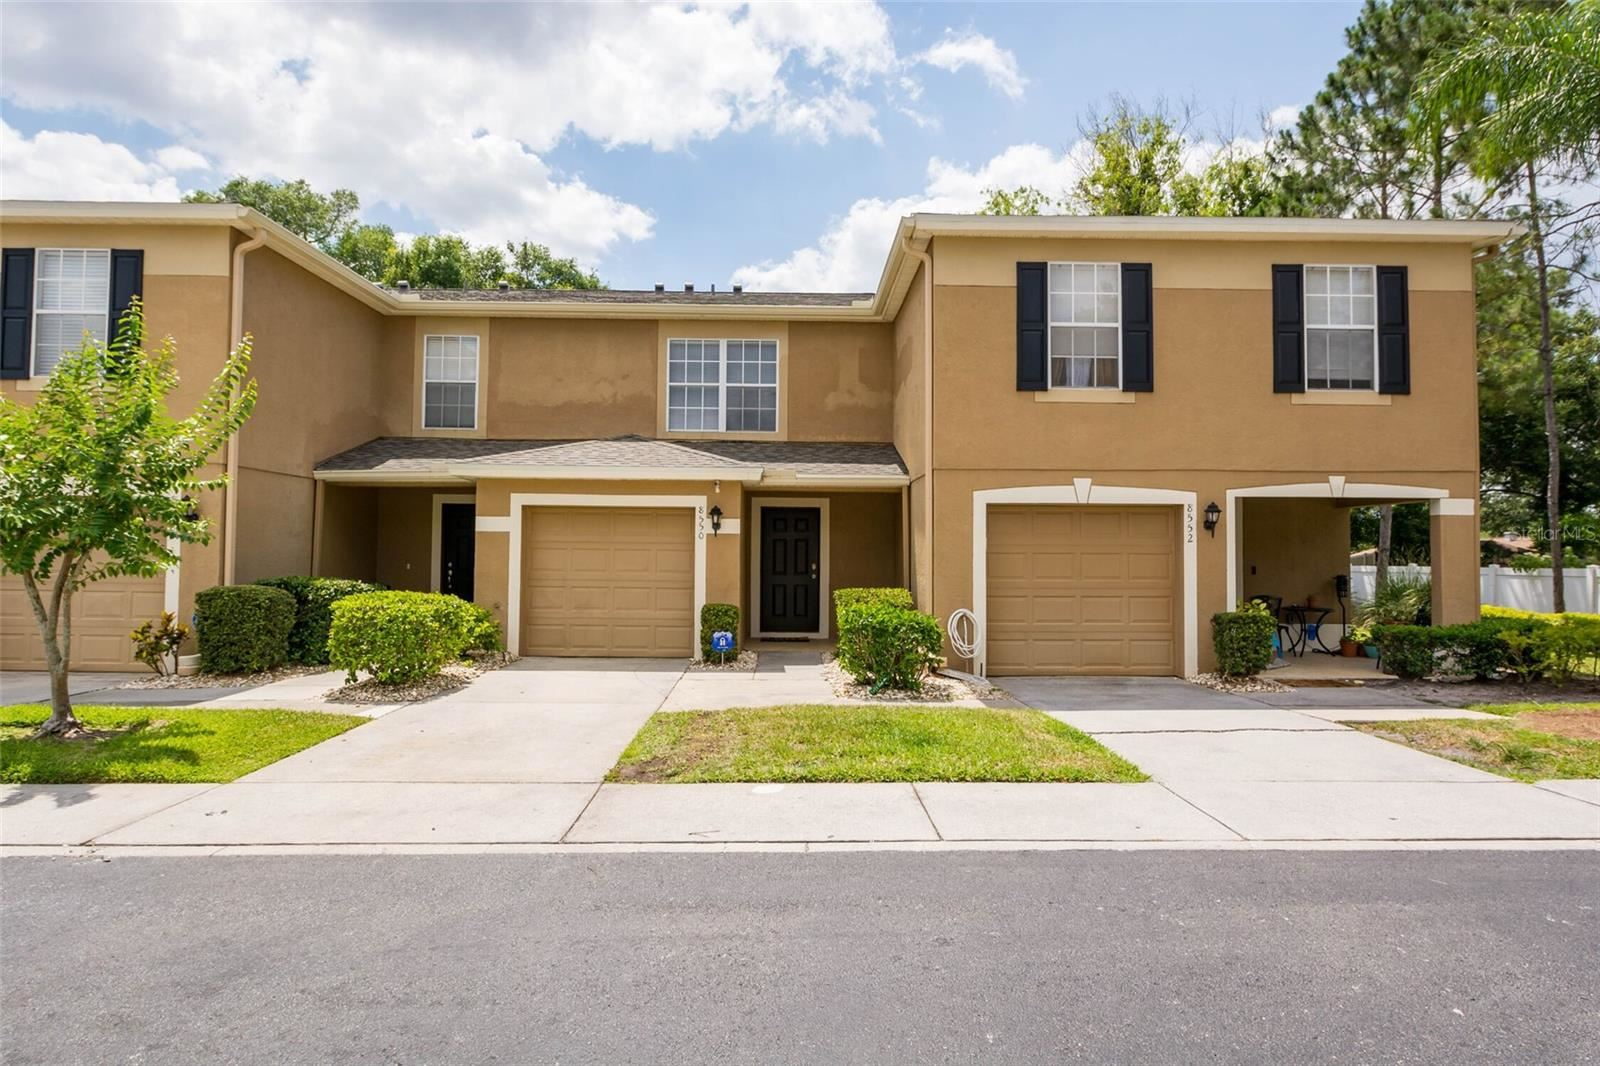 8550 EDGEWATER PLACE BOULEVARD, Tampa, FL 33615 - MLS#: A4503576